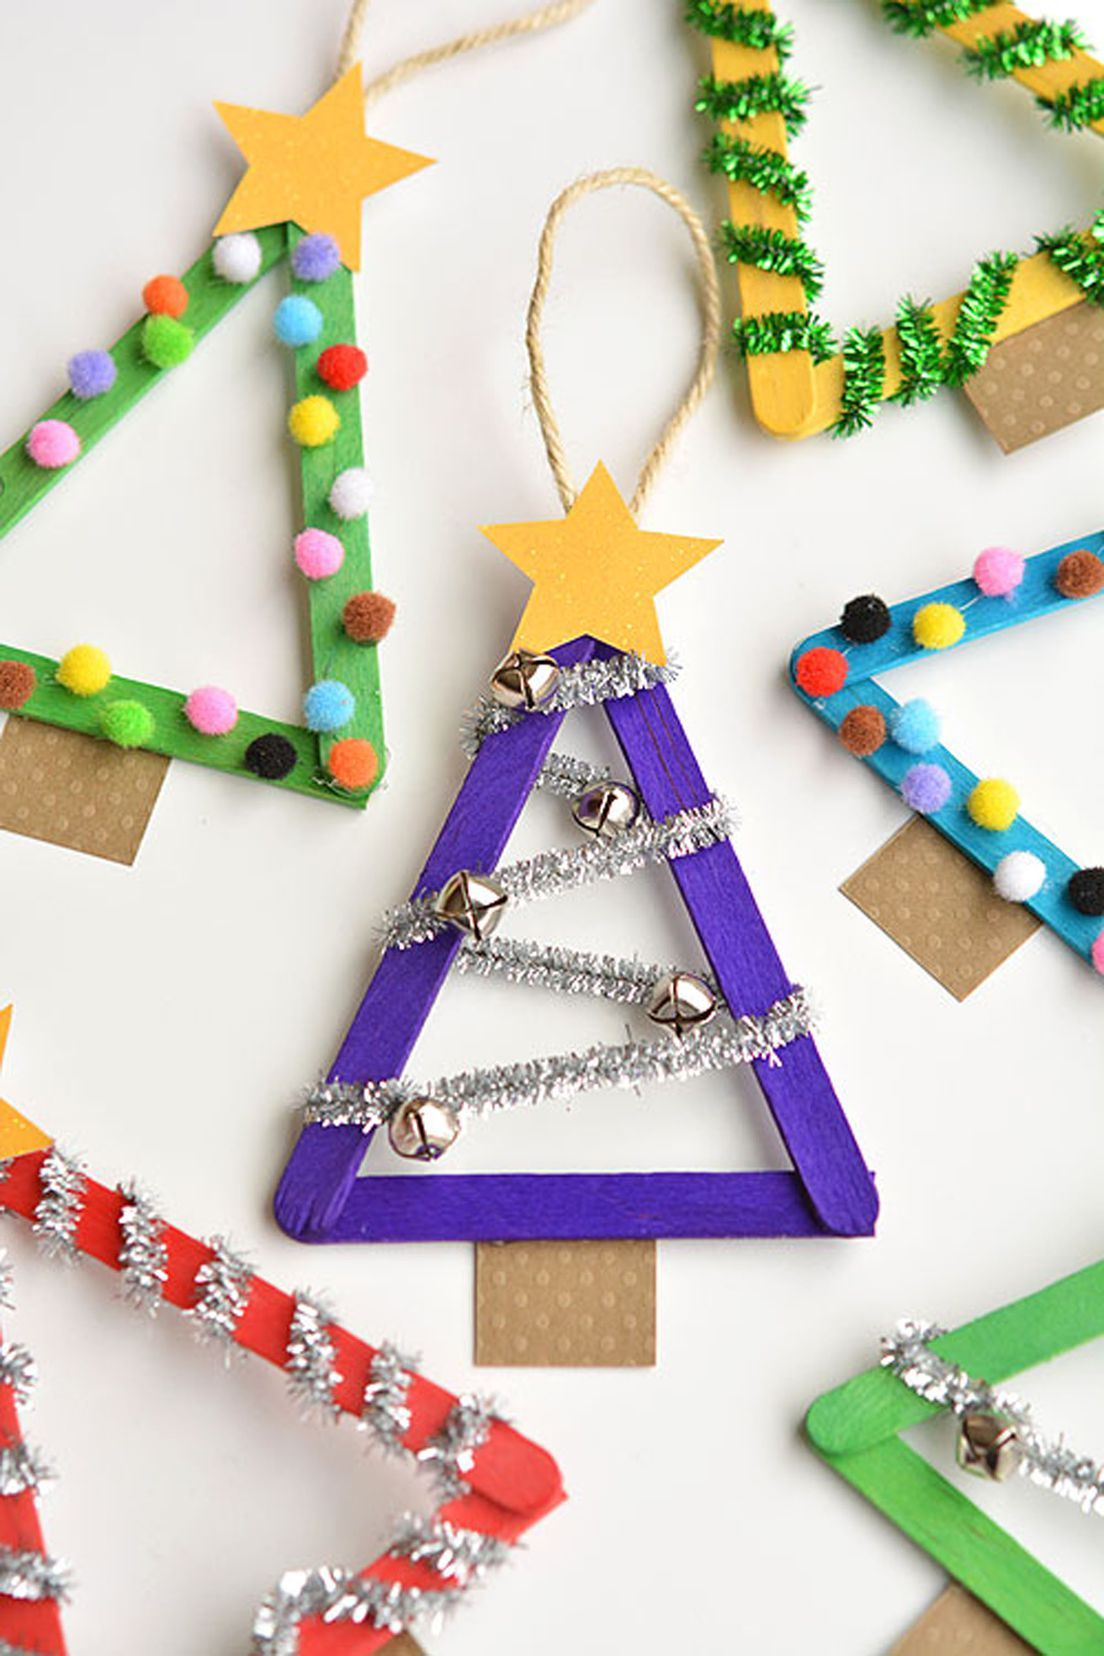 12 Easy Christmas Crafts For Kids to Make - Ideas for Christmas Decorations for Kids